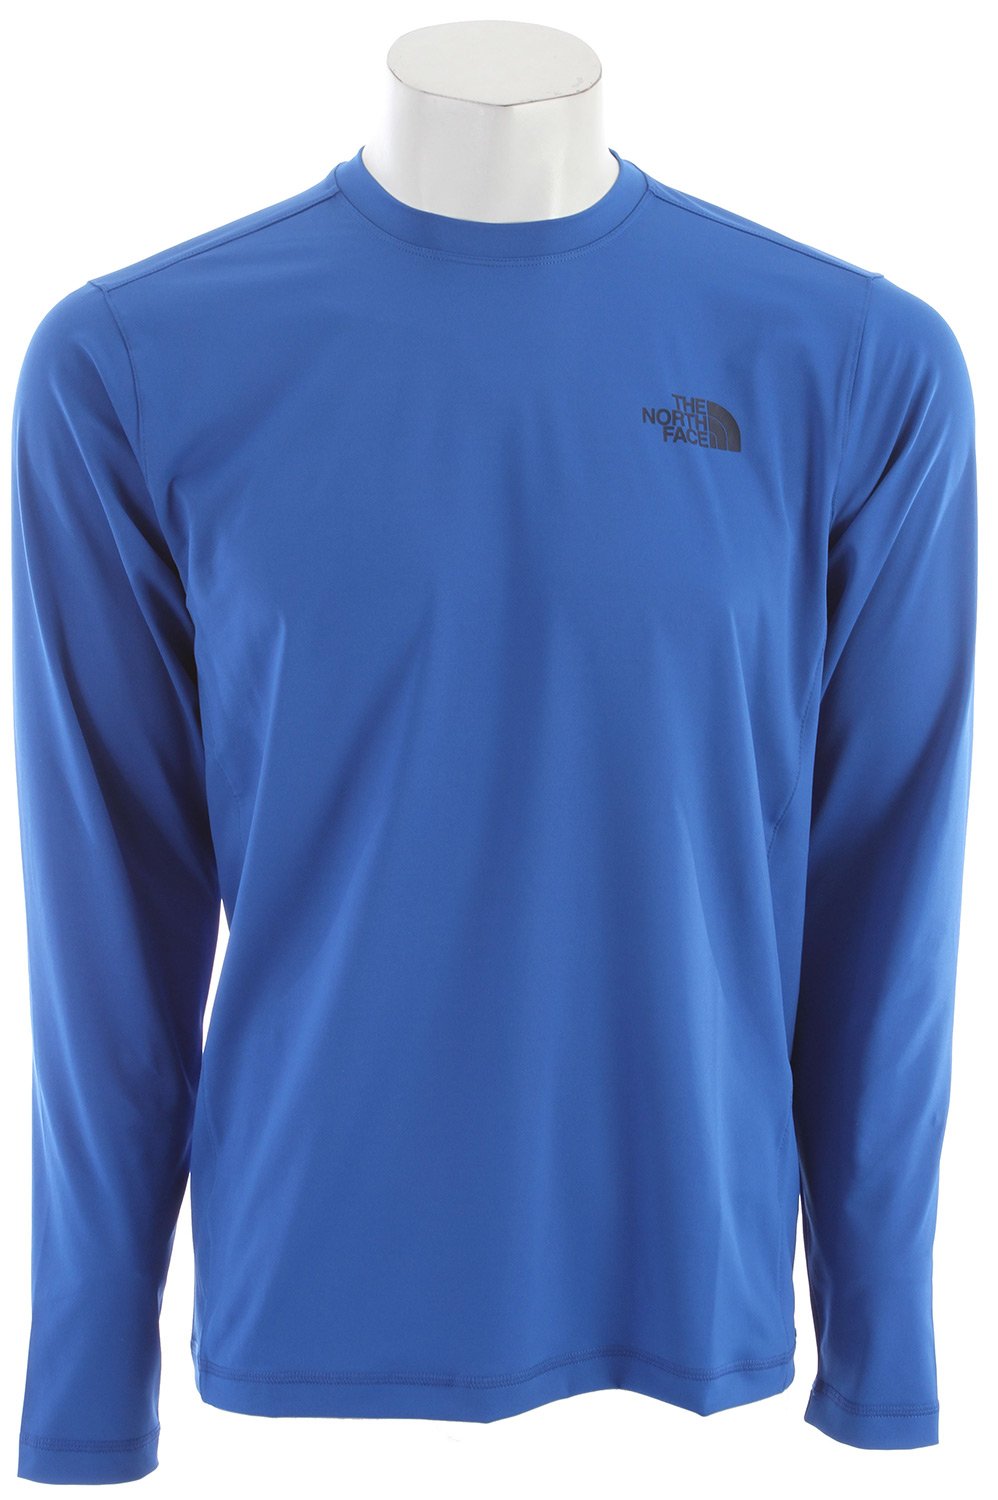 "A lightweight, quick-drying, stretch shirt with sun protection for all-day water adventure. Key Features of The North Face Class V L/S Water Shirt: Soft quick-drying four-way stretch knit Quick-drying performance Flat-locked stitching for comfort and reduced abrasion Relaxed fit Ultraviolet Protection Factor (UPF) 50 Avg weight: 210 g (7 oz) Center back: 27"" Fabric: 75D 208 g/m² (7.33 oz/yd2) 82% polyester 12% elastane jersey - $30.95"